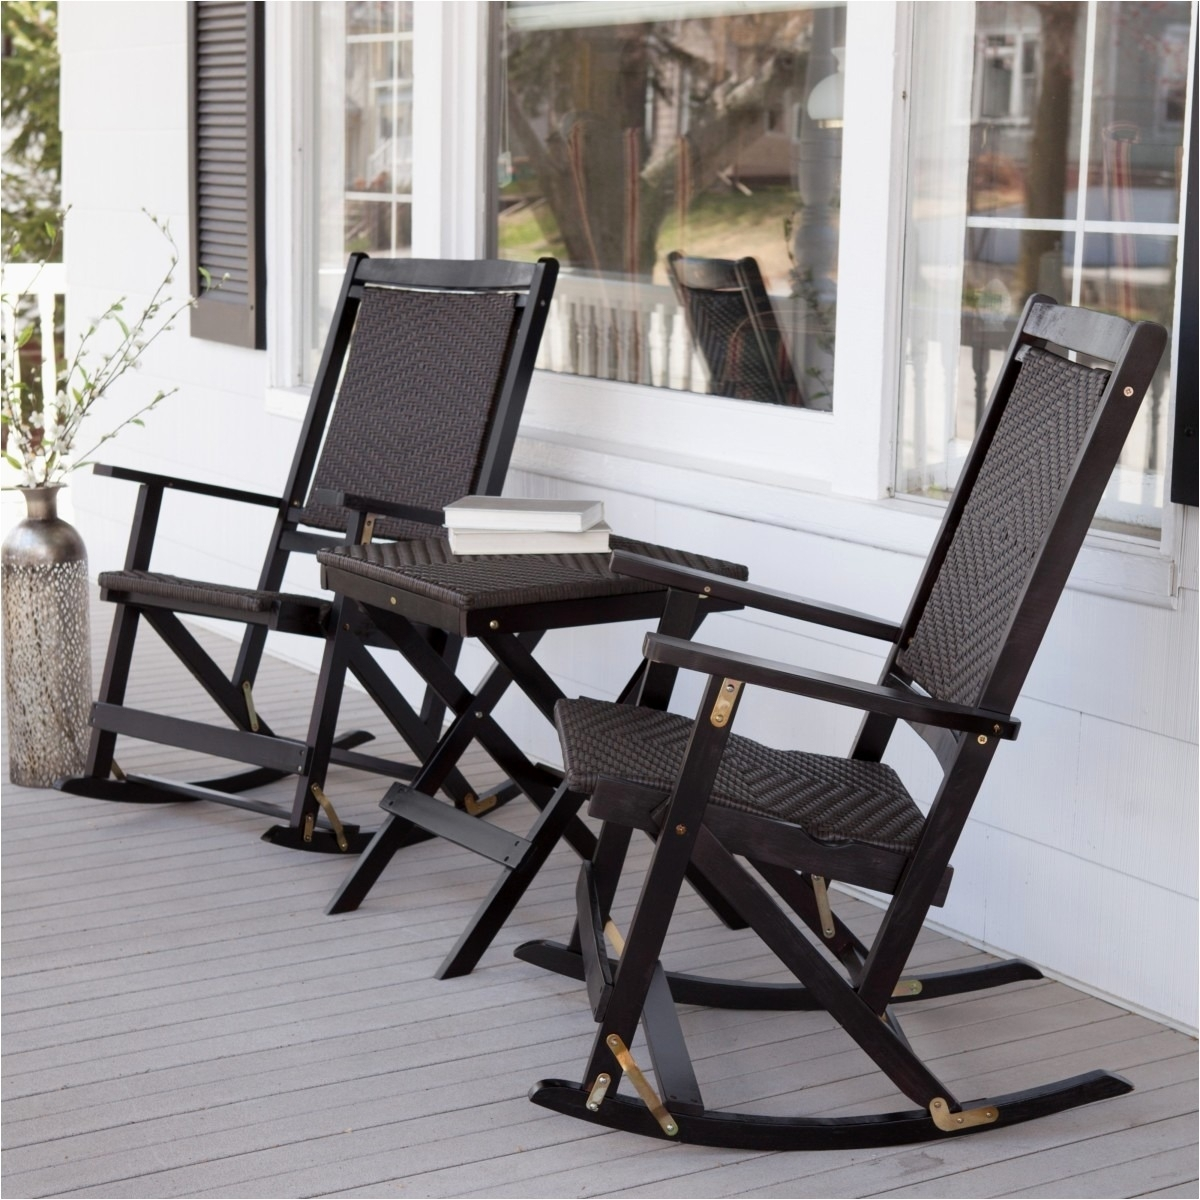 Inspiration about Resin Outdoor Rocking Chairs Lovely Patio Chairs Plastic Muskoka Throughout Outdoor Rocking Chairs With Table (#9 of 15)